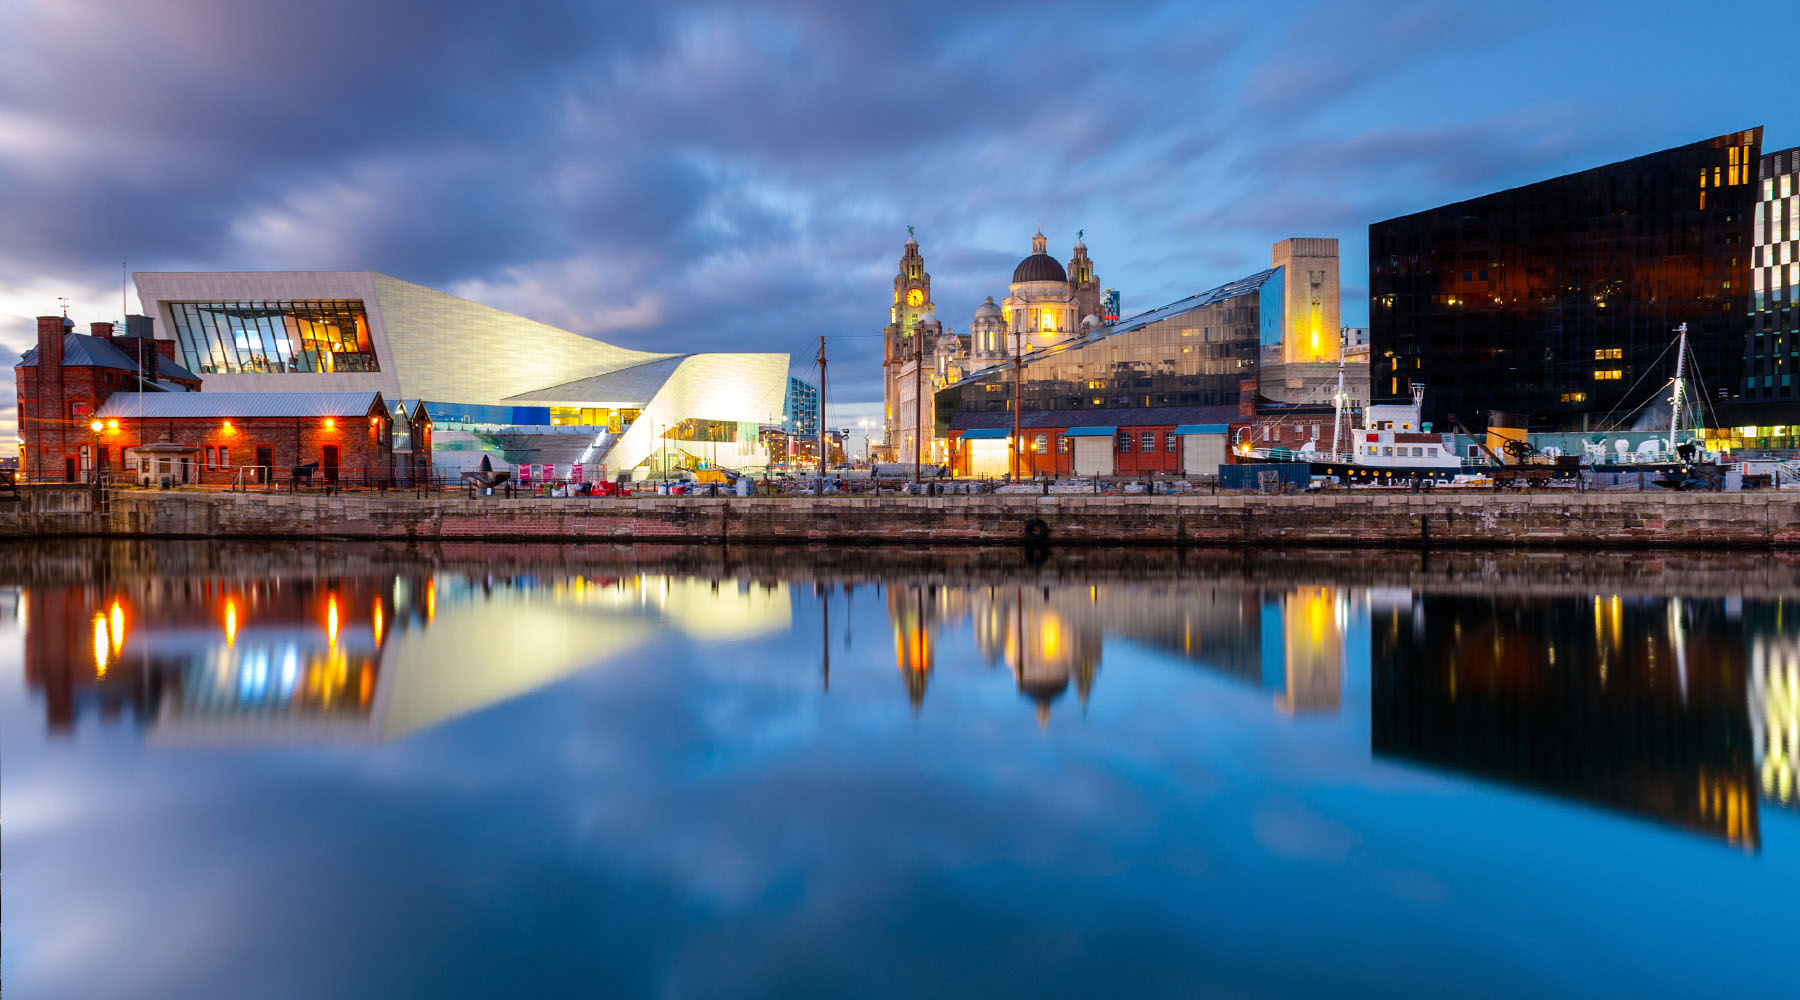 Diary of an AzAmazing Evening to Remember in Liverpool